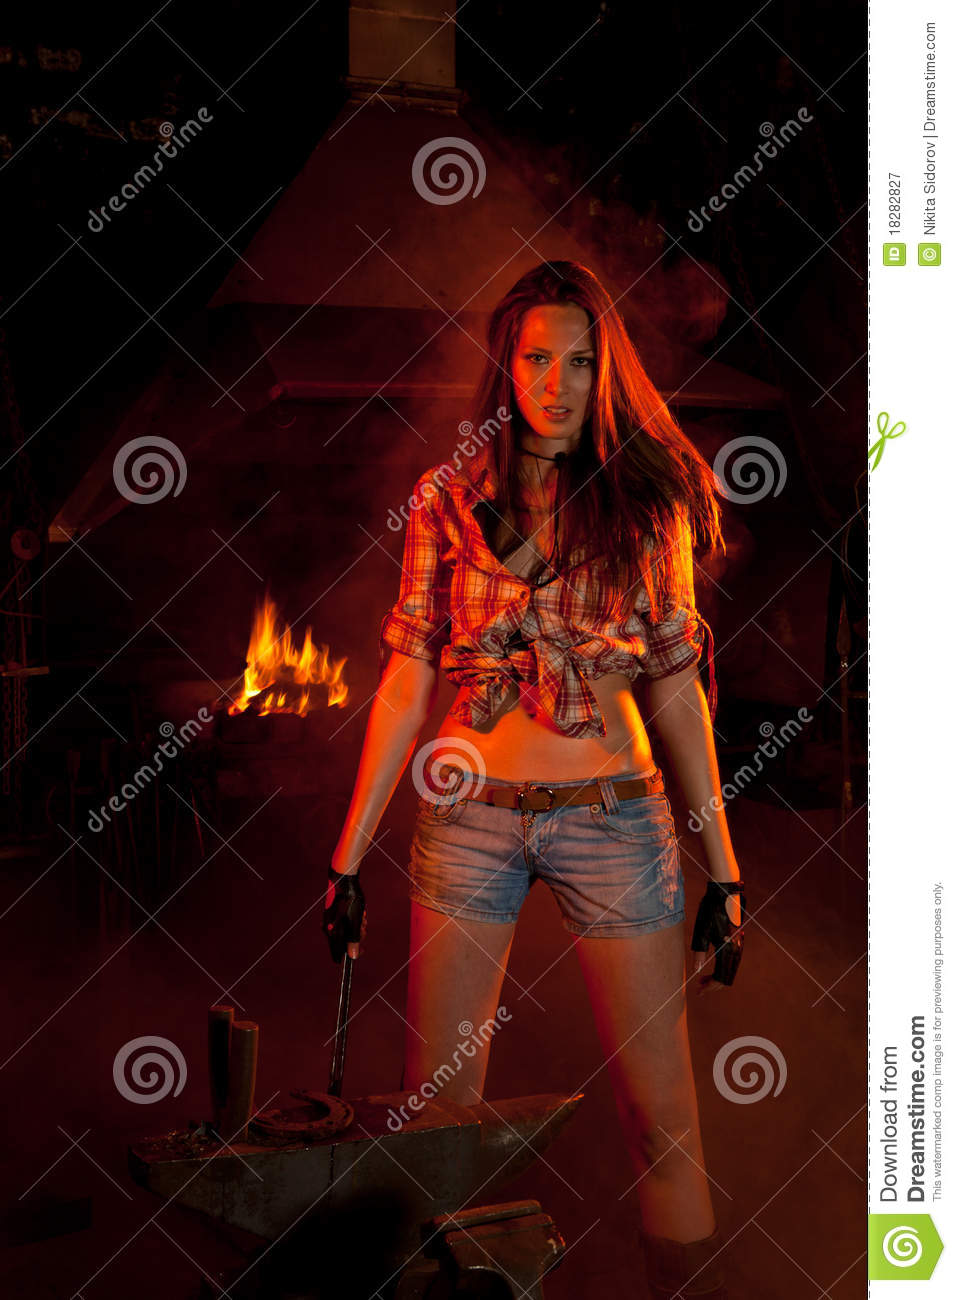 Beautiful Girl Hand Wallpaper Blacksmith Girl Stock Image Image Of Furnace Filled